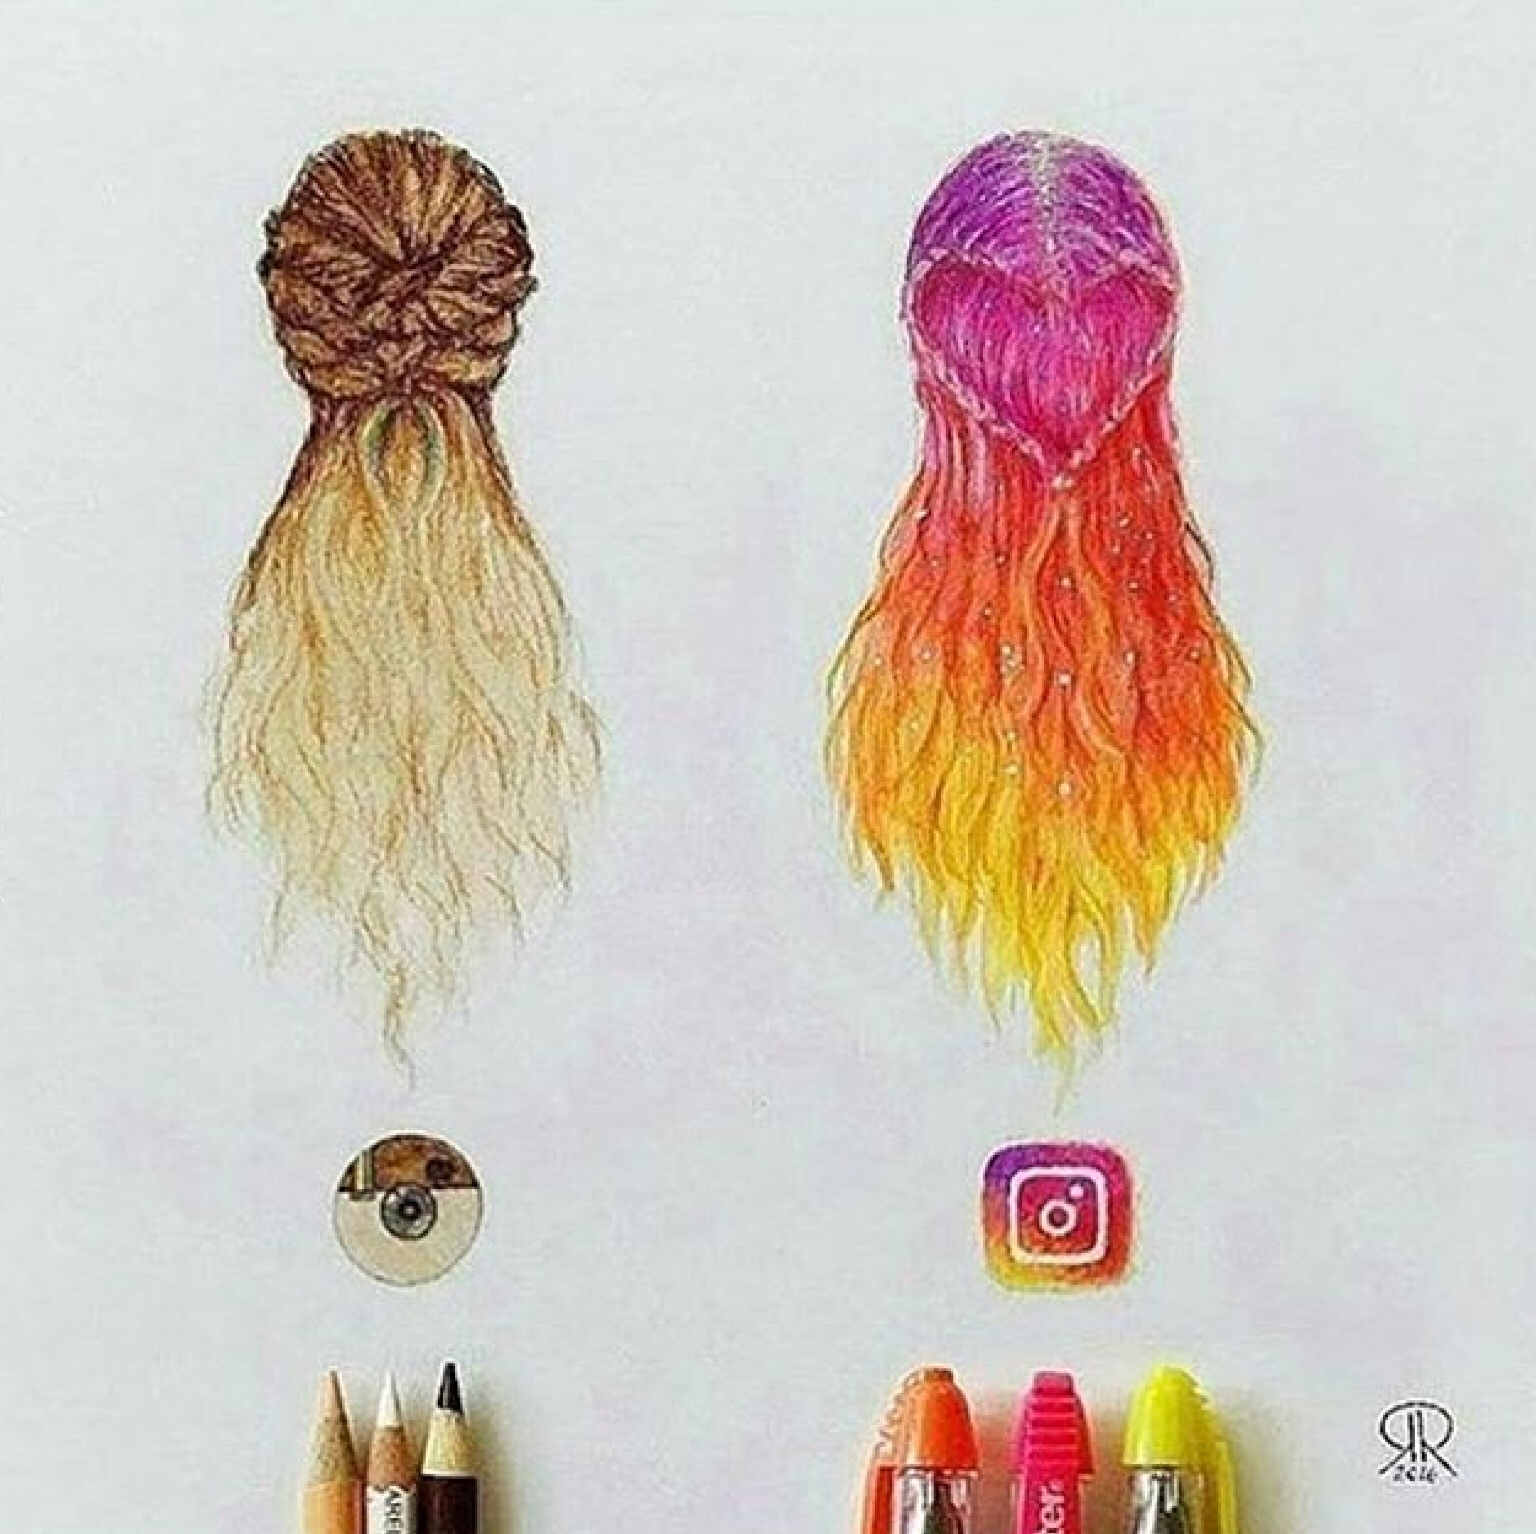 art, colorful, drawing, hair, inspiration